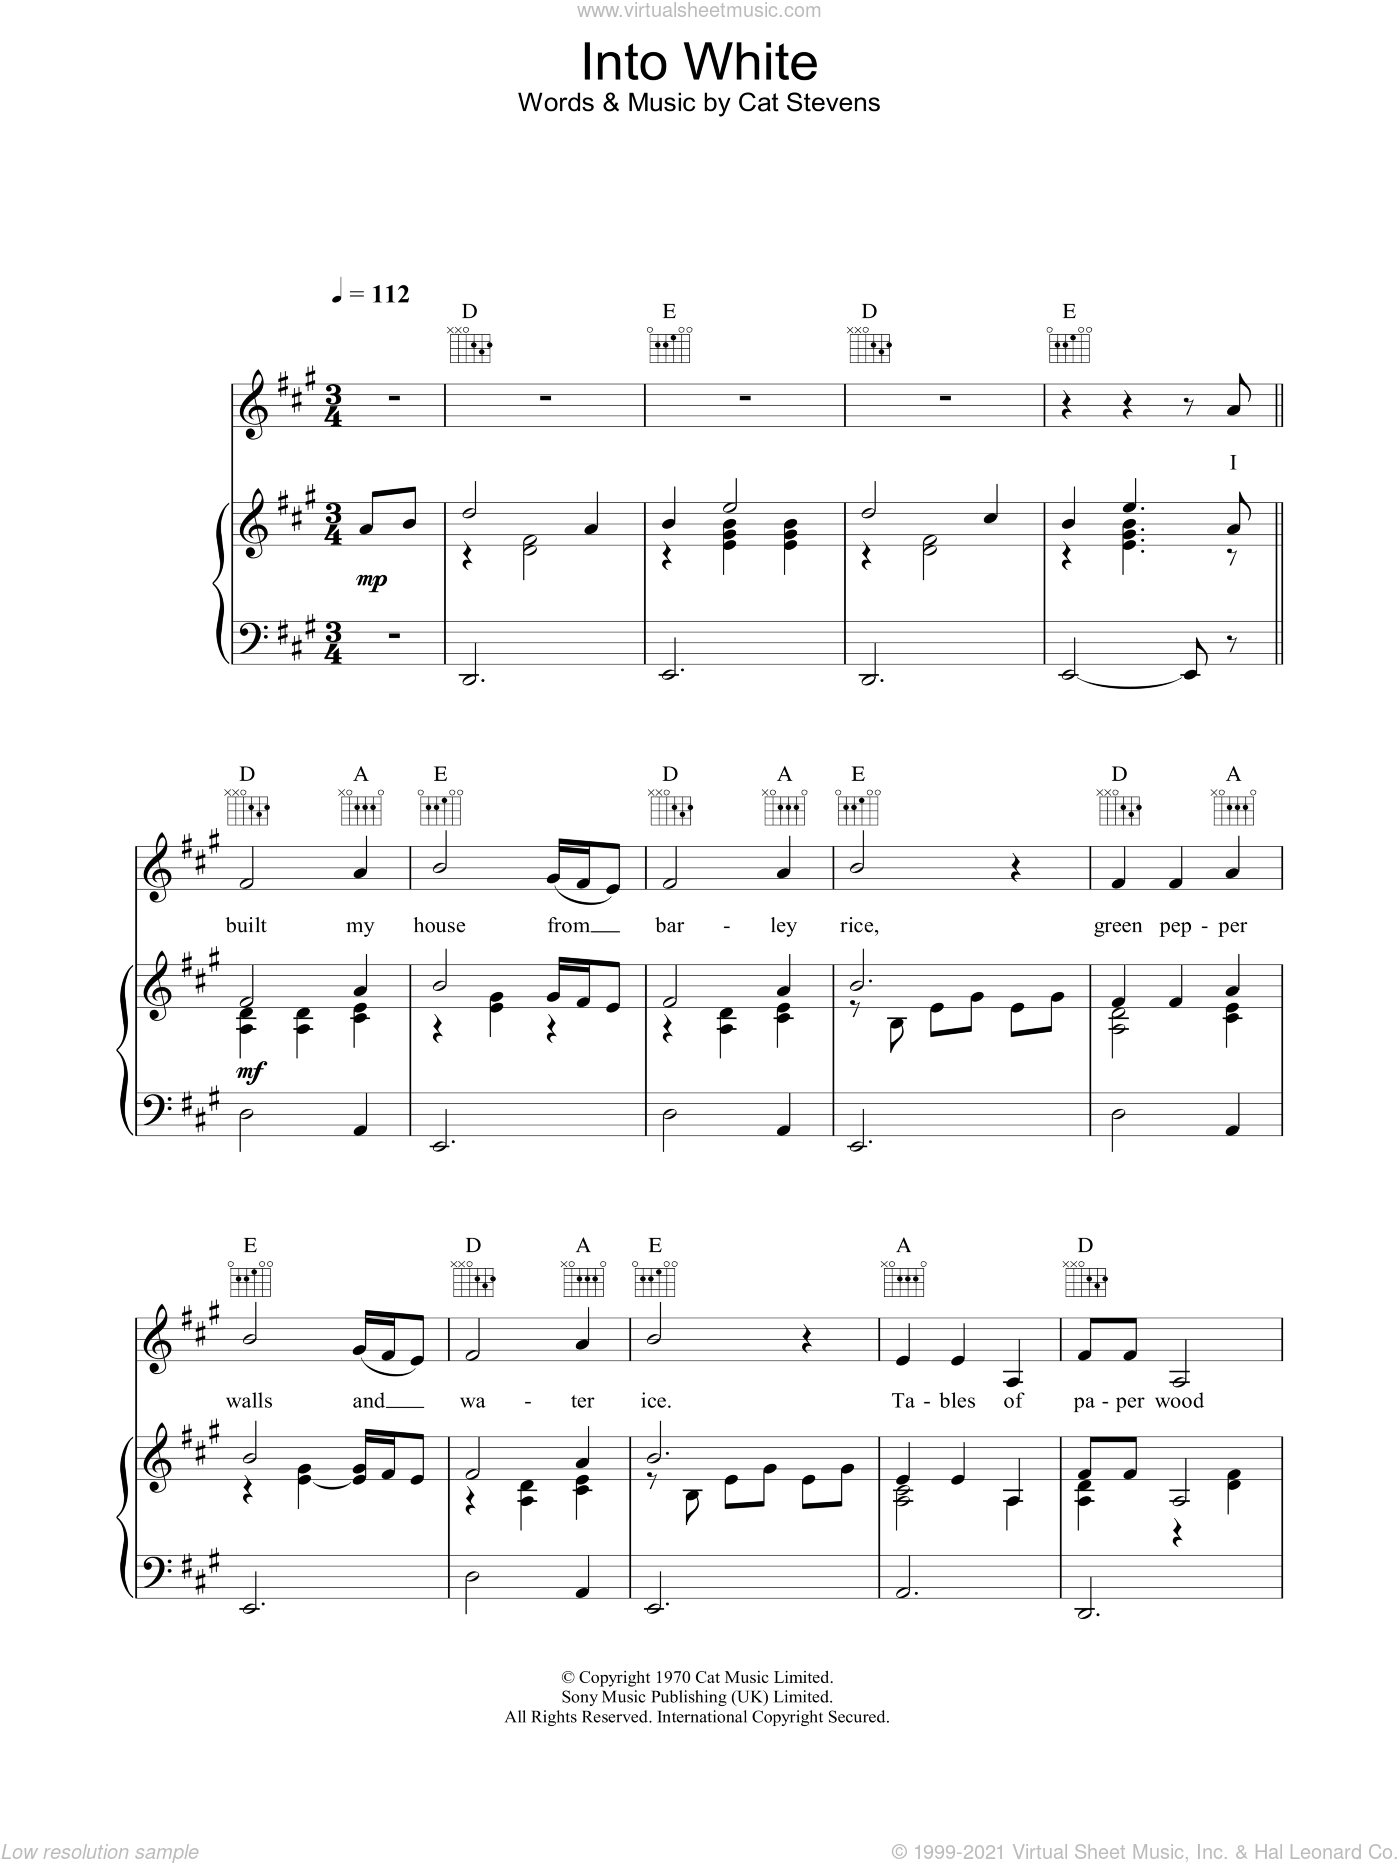 Into White sheet music for voice, piano or guitar by Cat Stevens, intermediate skill level